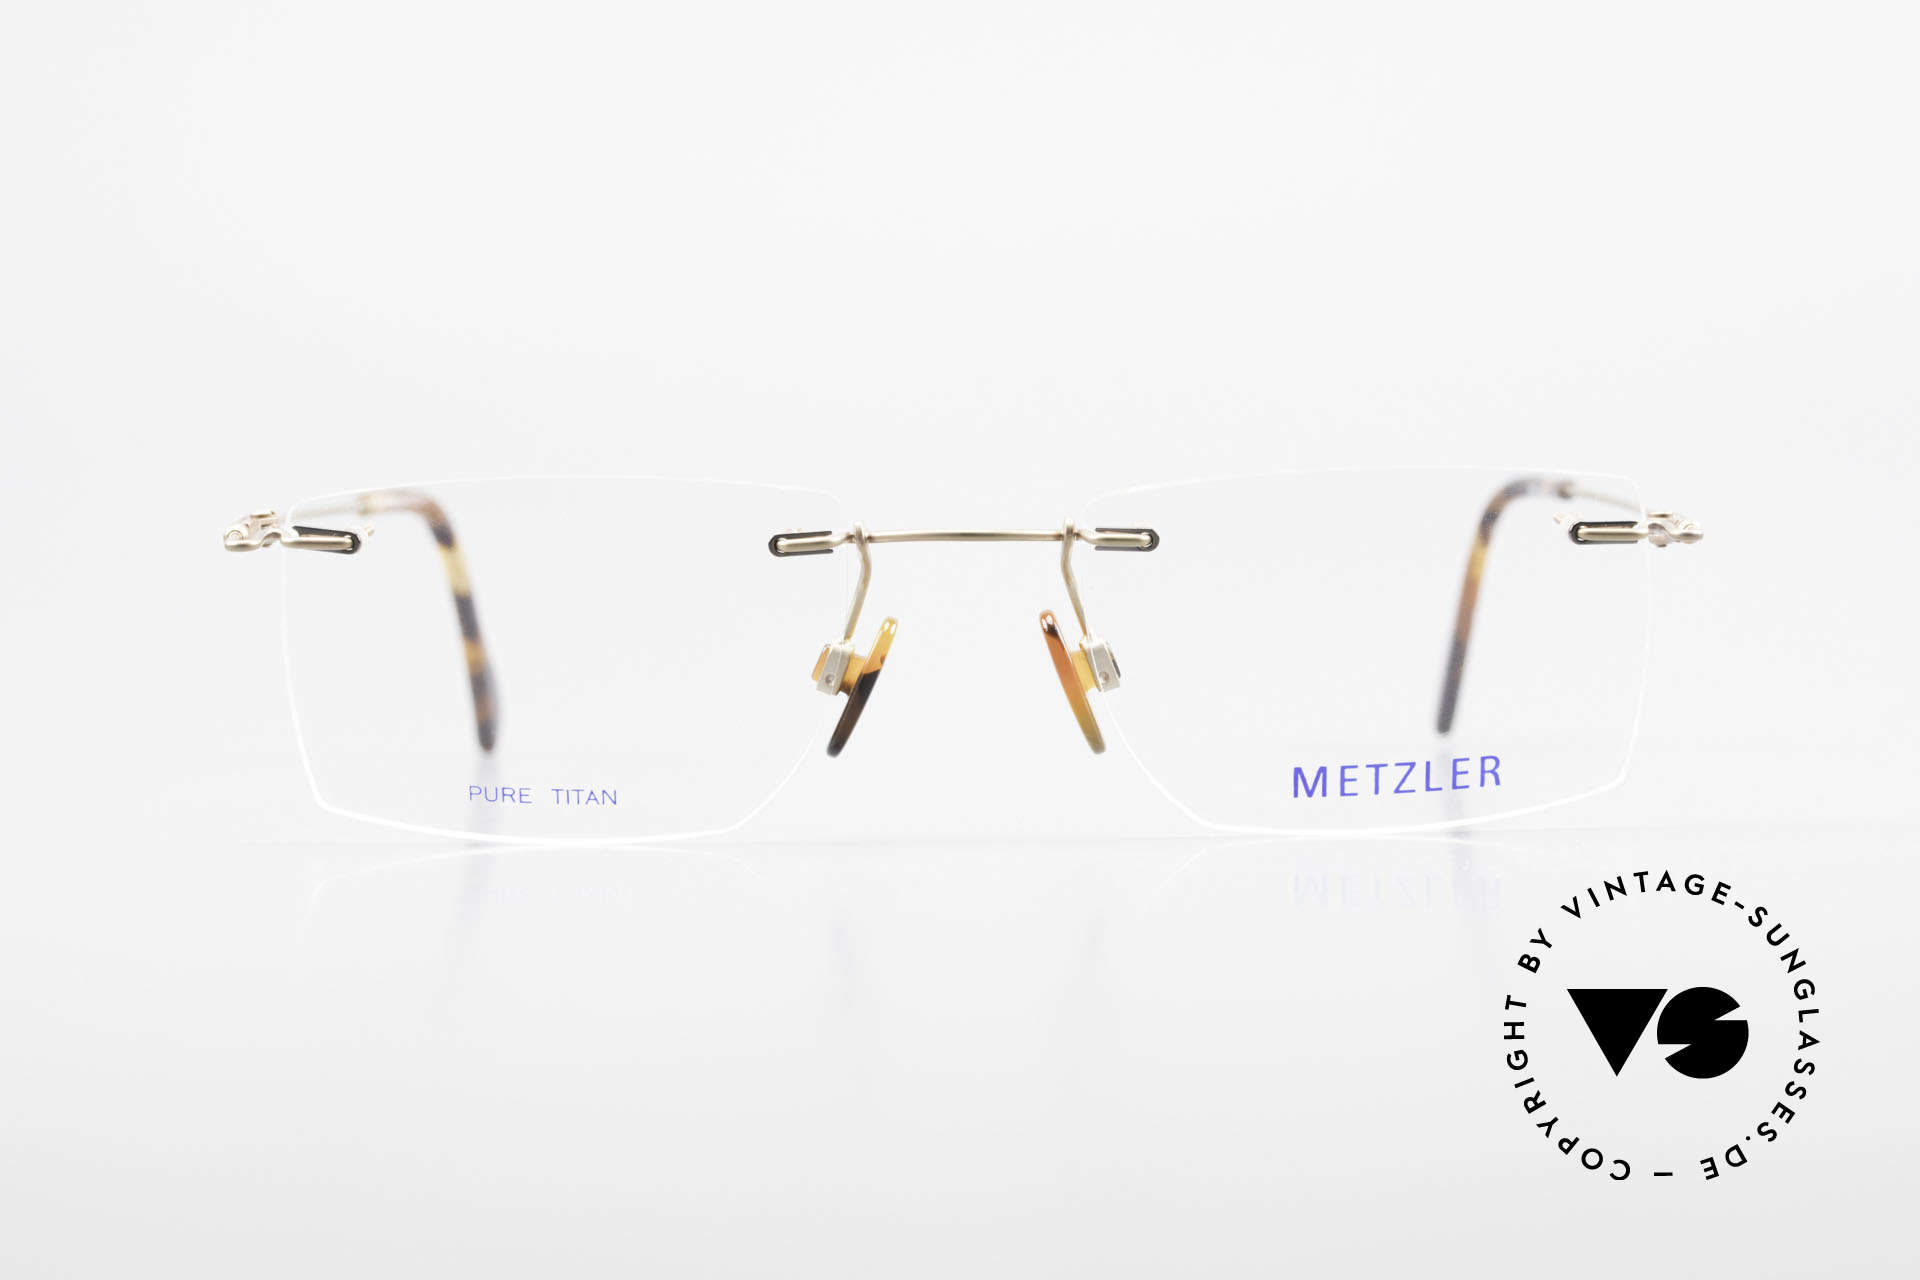 Metzler 1484 Rimless Vintage Glasses Titan, noble 'TITANIUM' frame; rimless and made in Germany, Made for Men